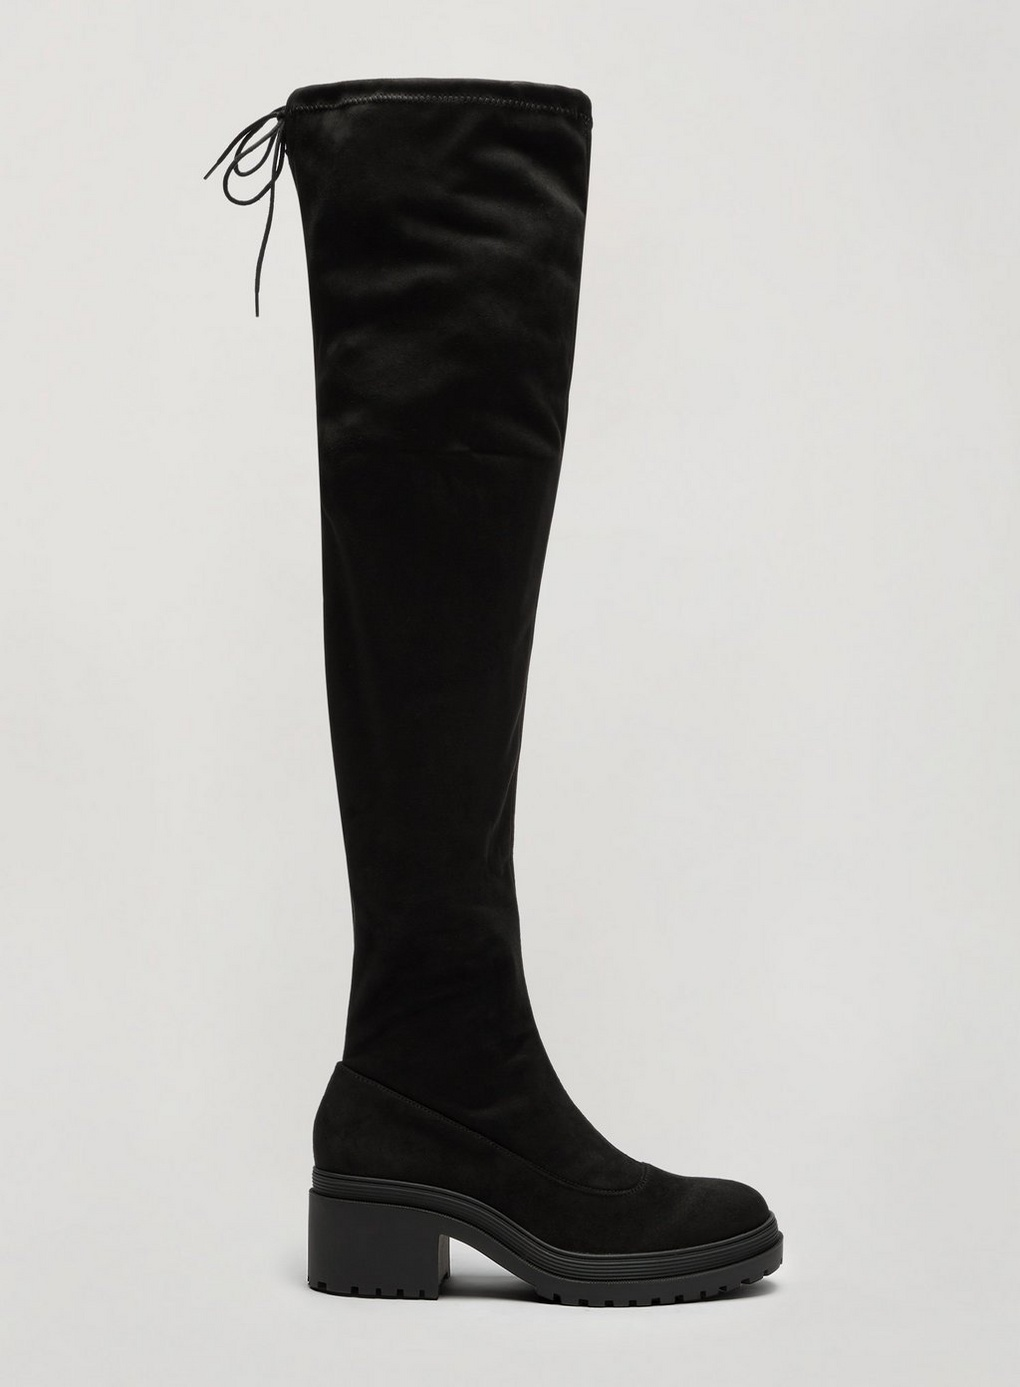 Miss Selfridge Womens Black Otto Over The Knee Boots Chunky Low Block Heel Shoes